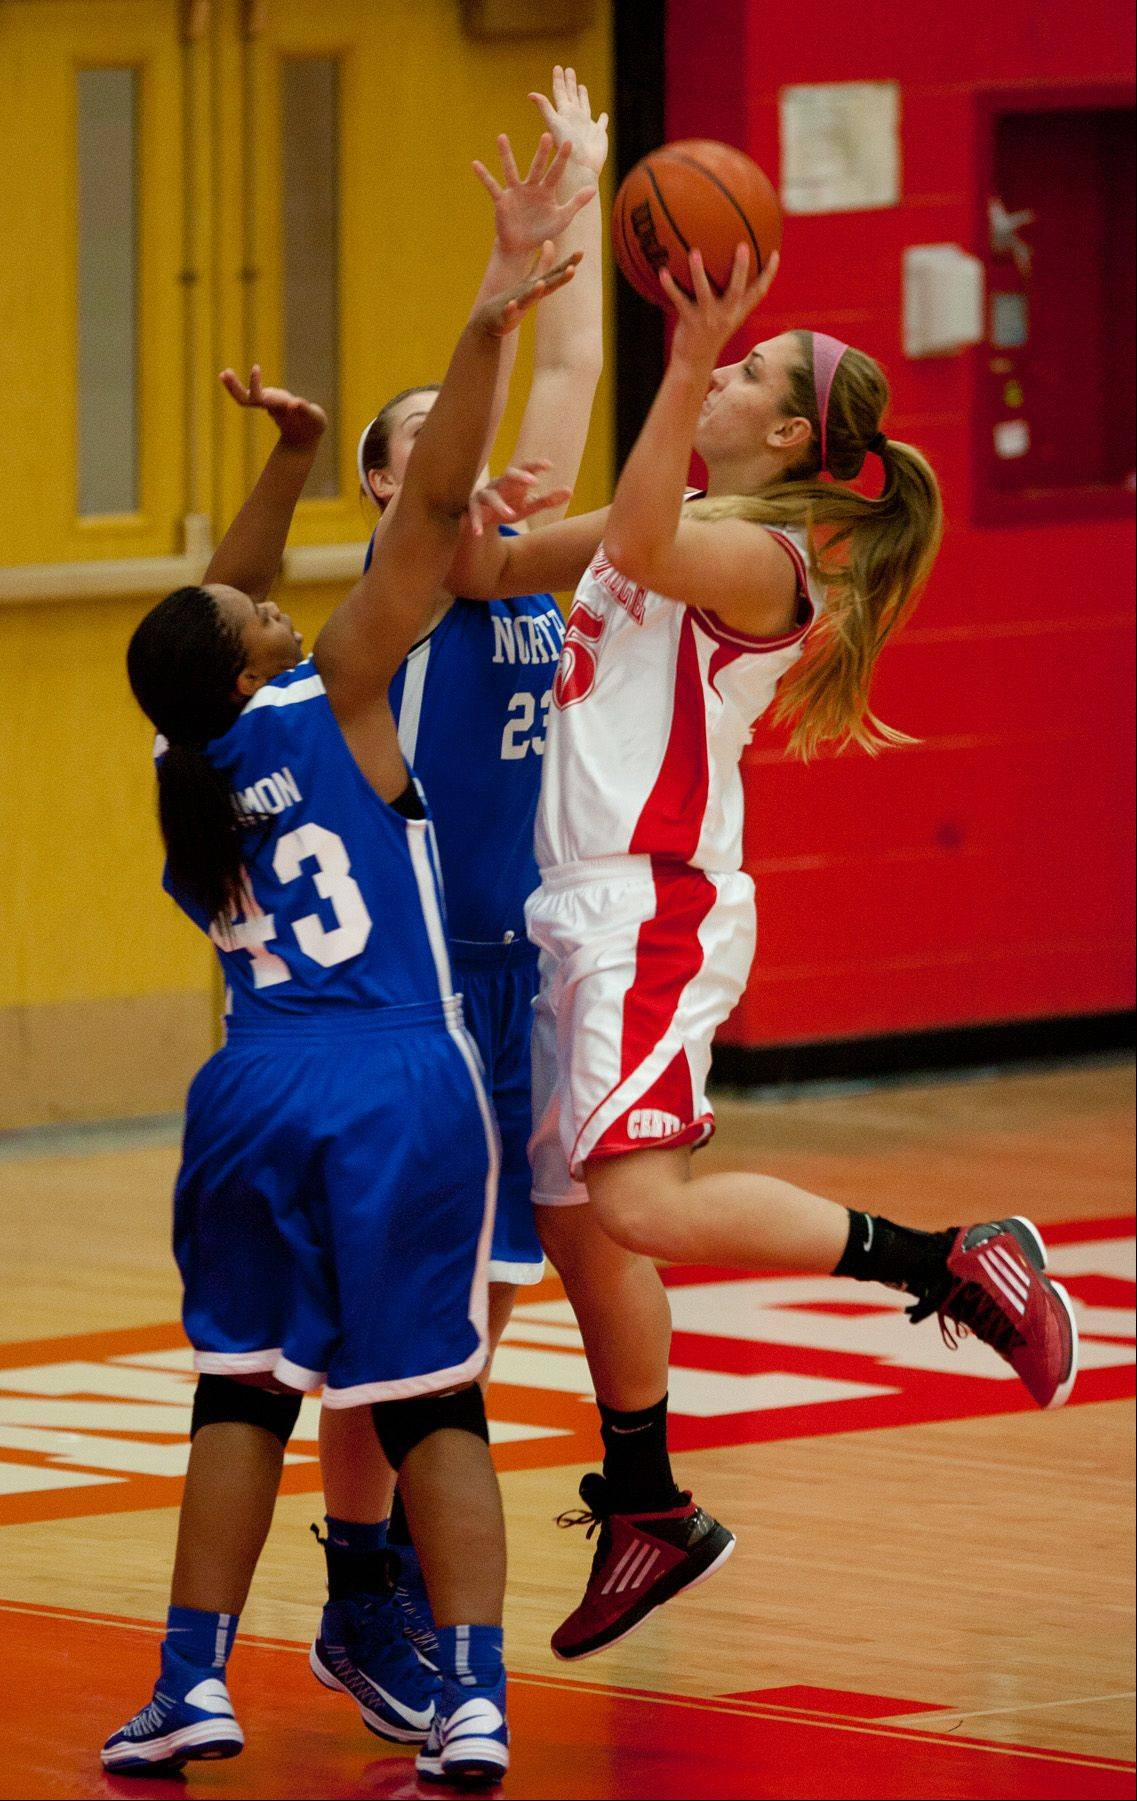 Naperville Central's Victoria Trowbridge shoots over Wheaton North, during girls basketball action in Naperville.